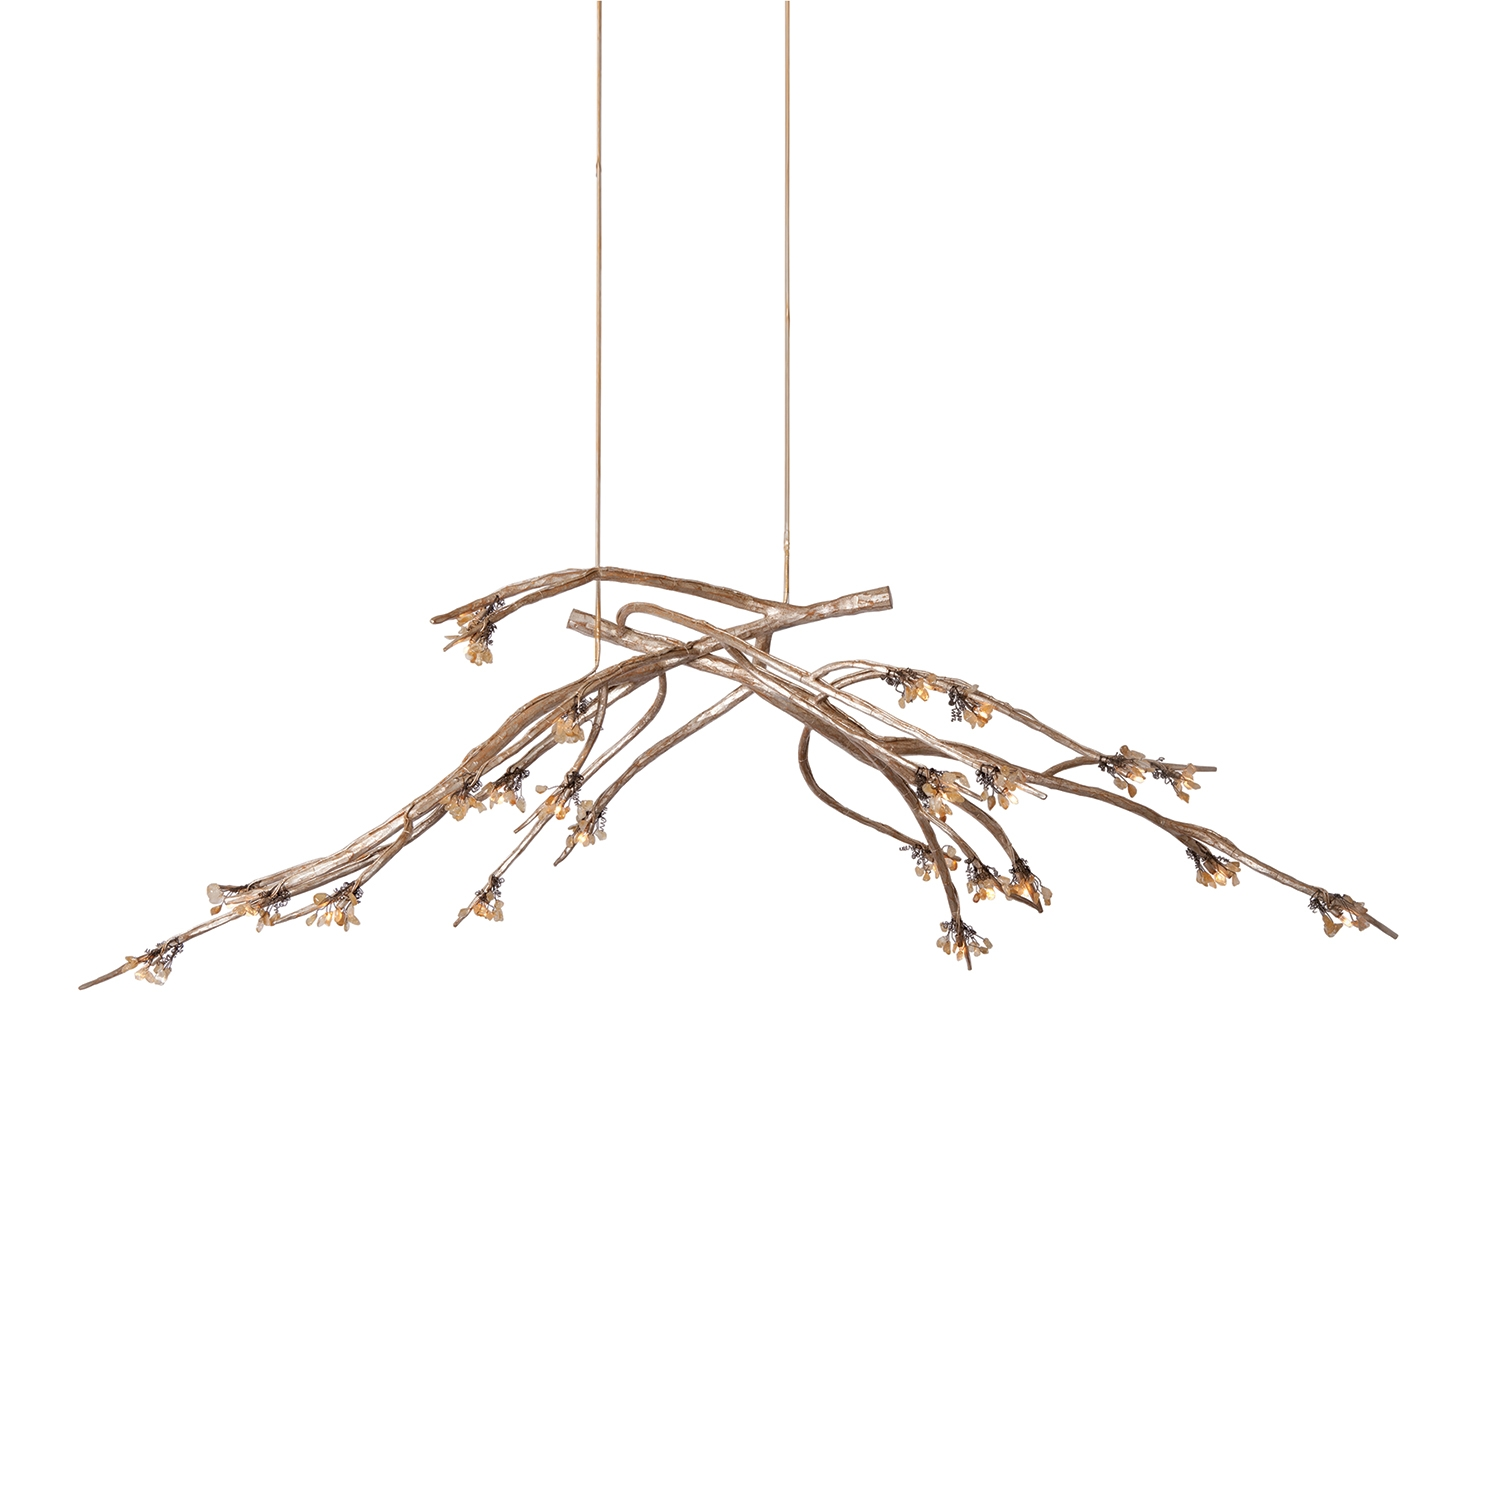 12 of Crystal Branch Chandelier